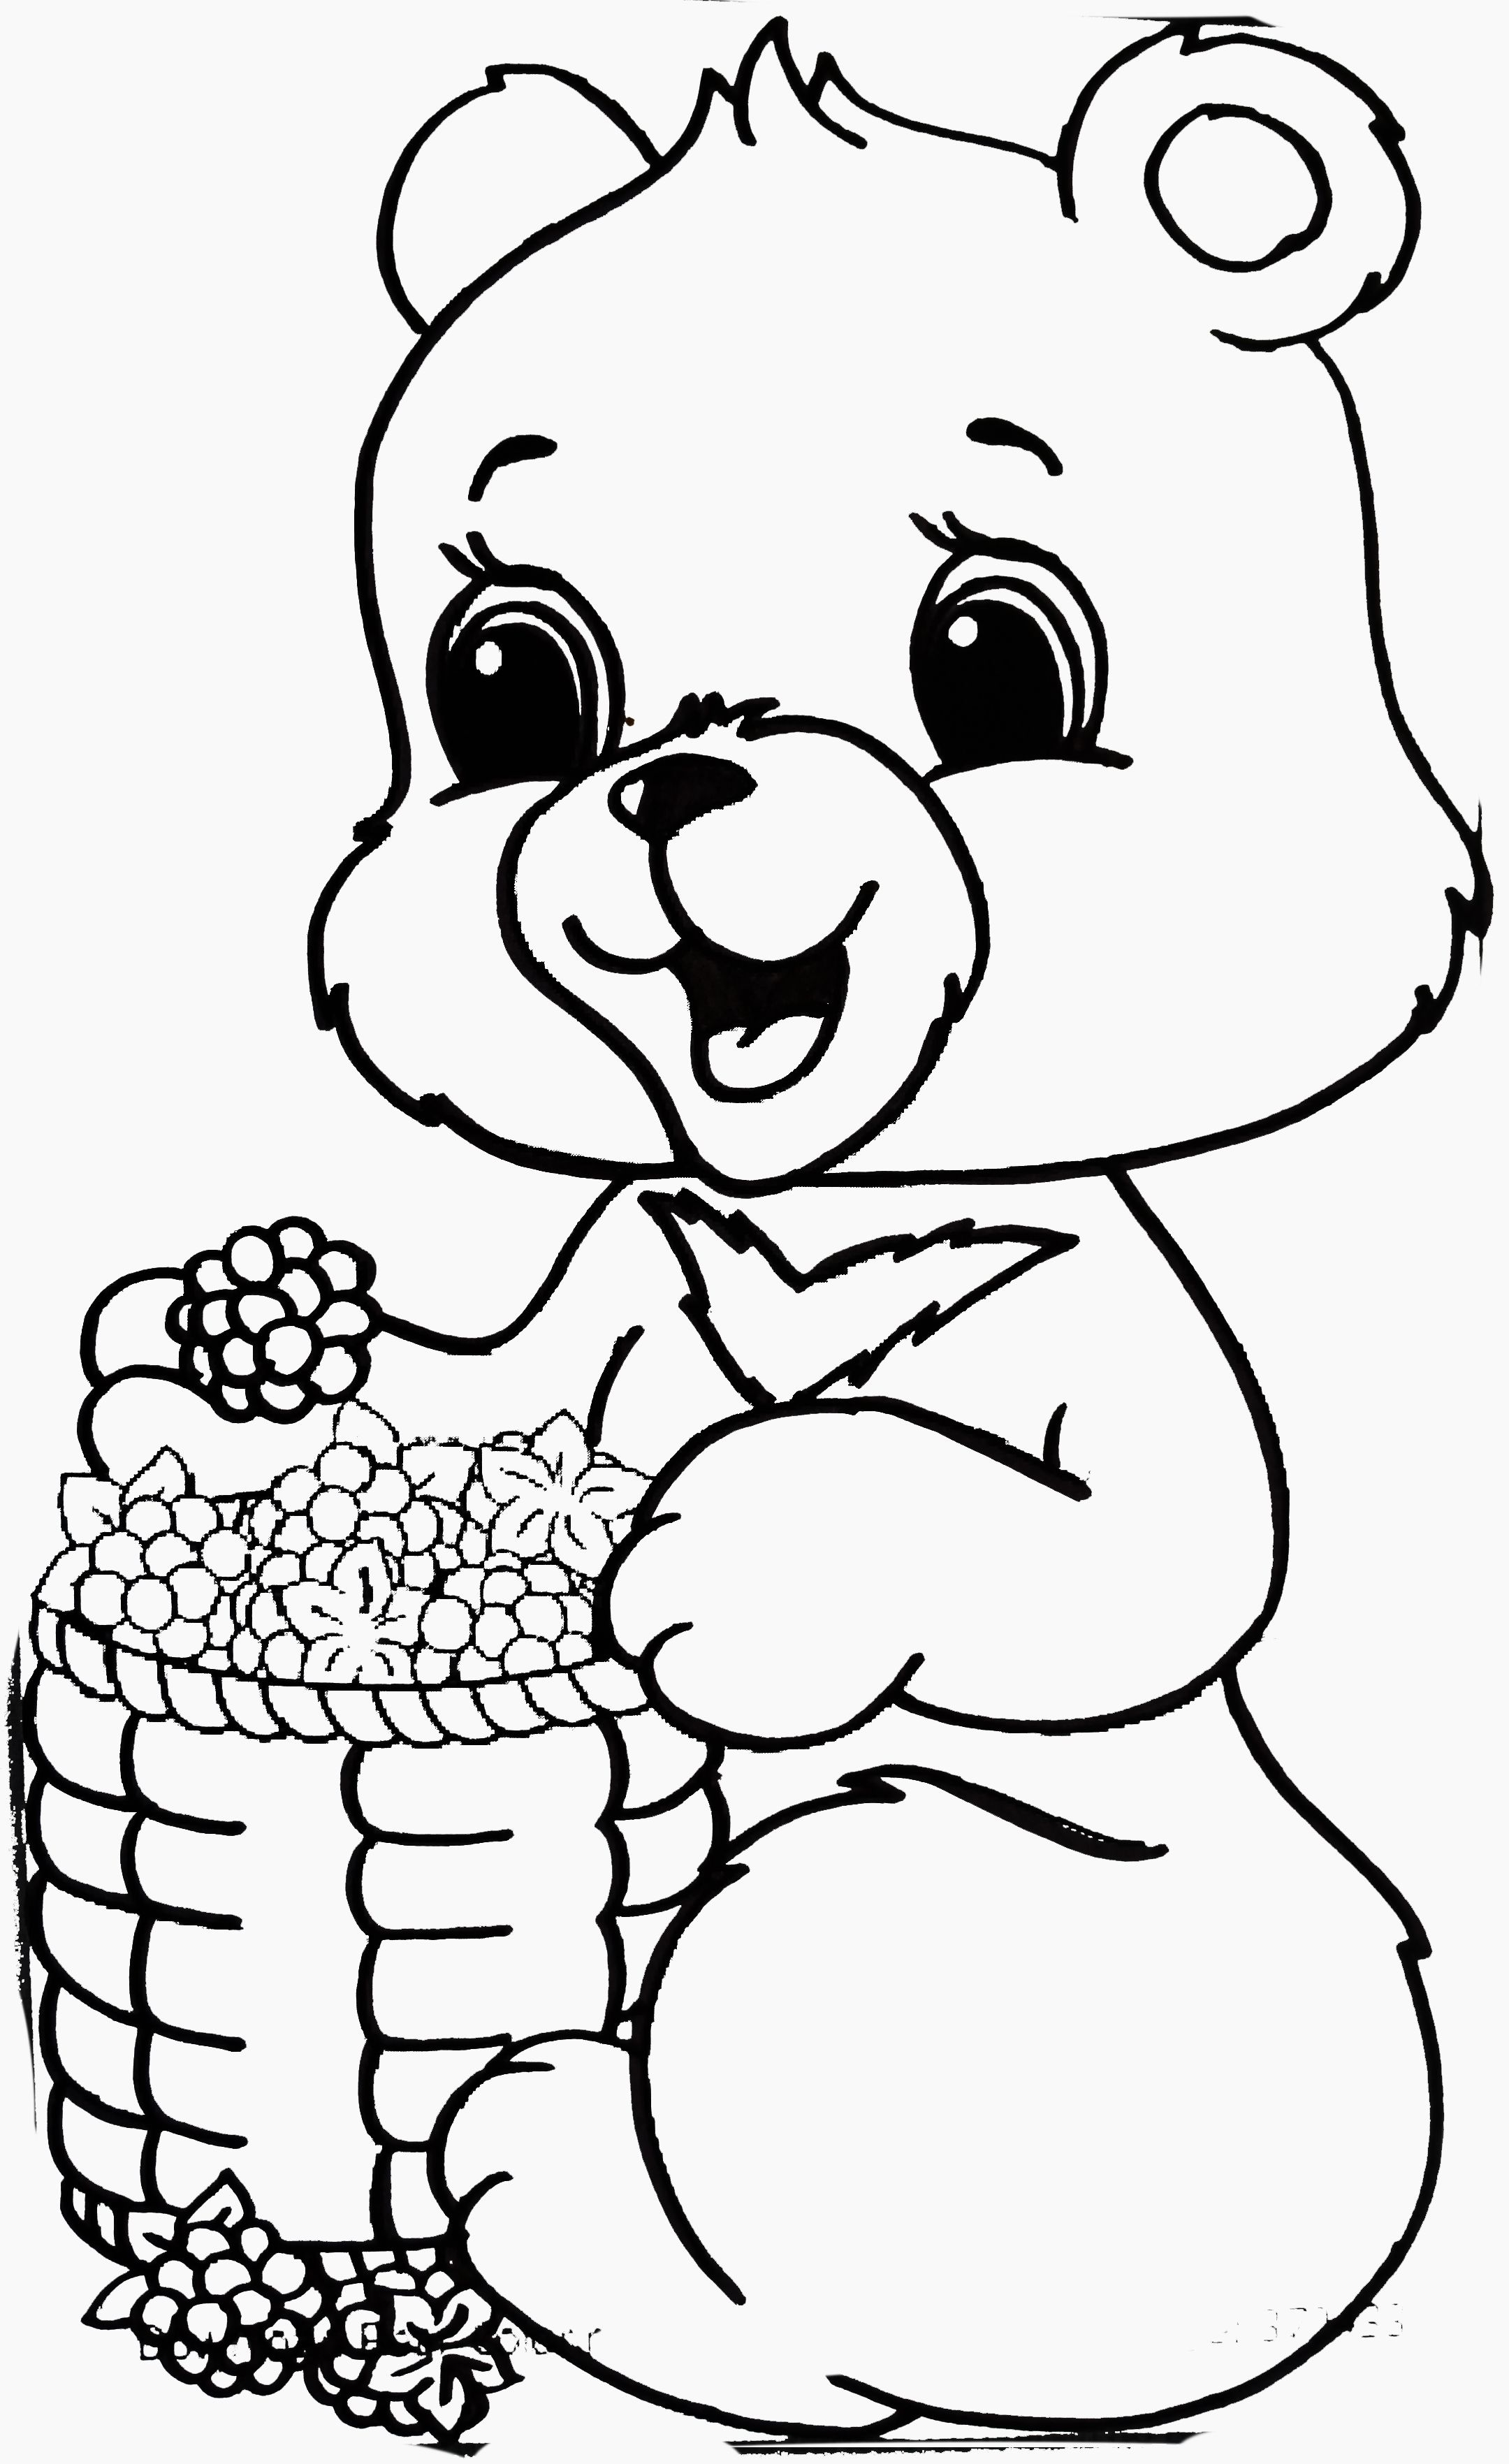 Pin by Amy on Coloring pages | Coloring pages, Animal ...